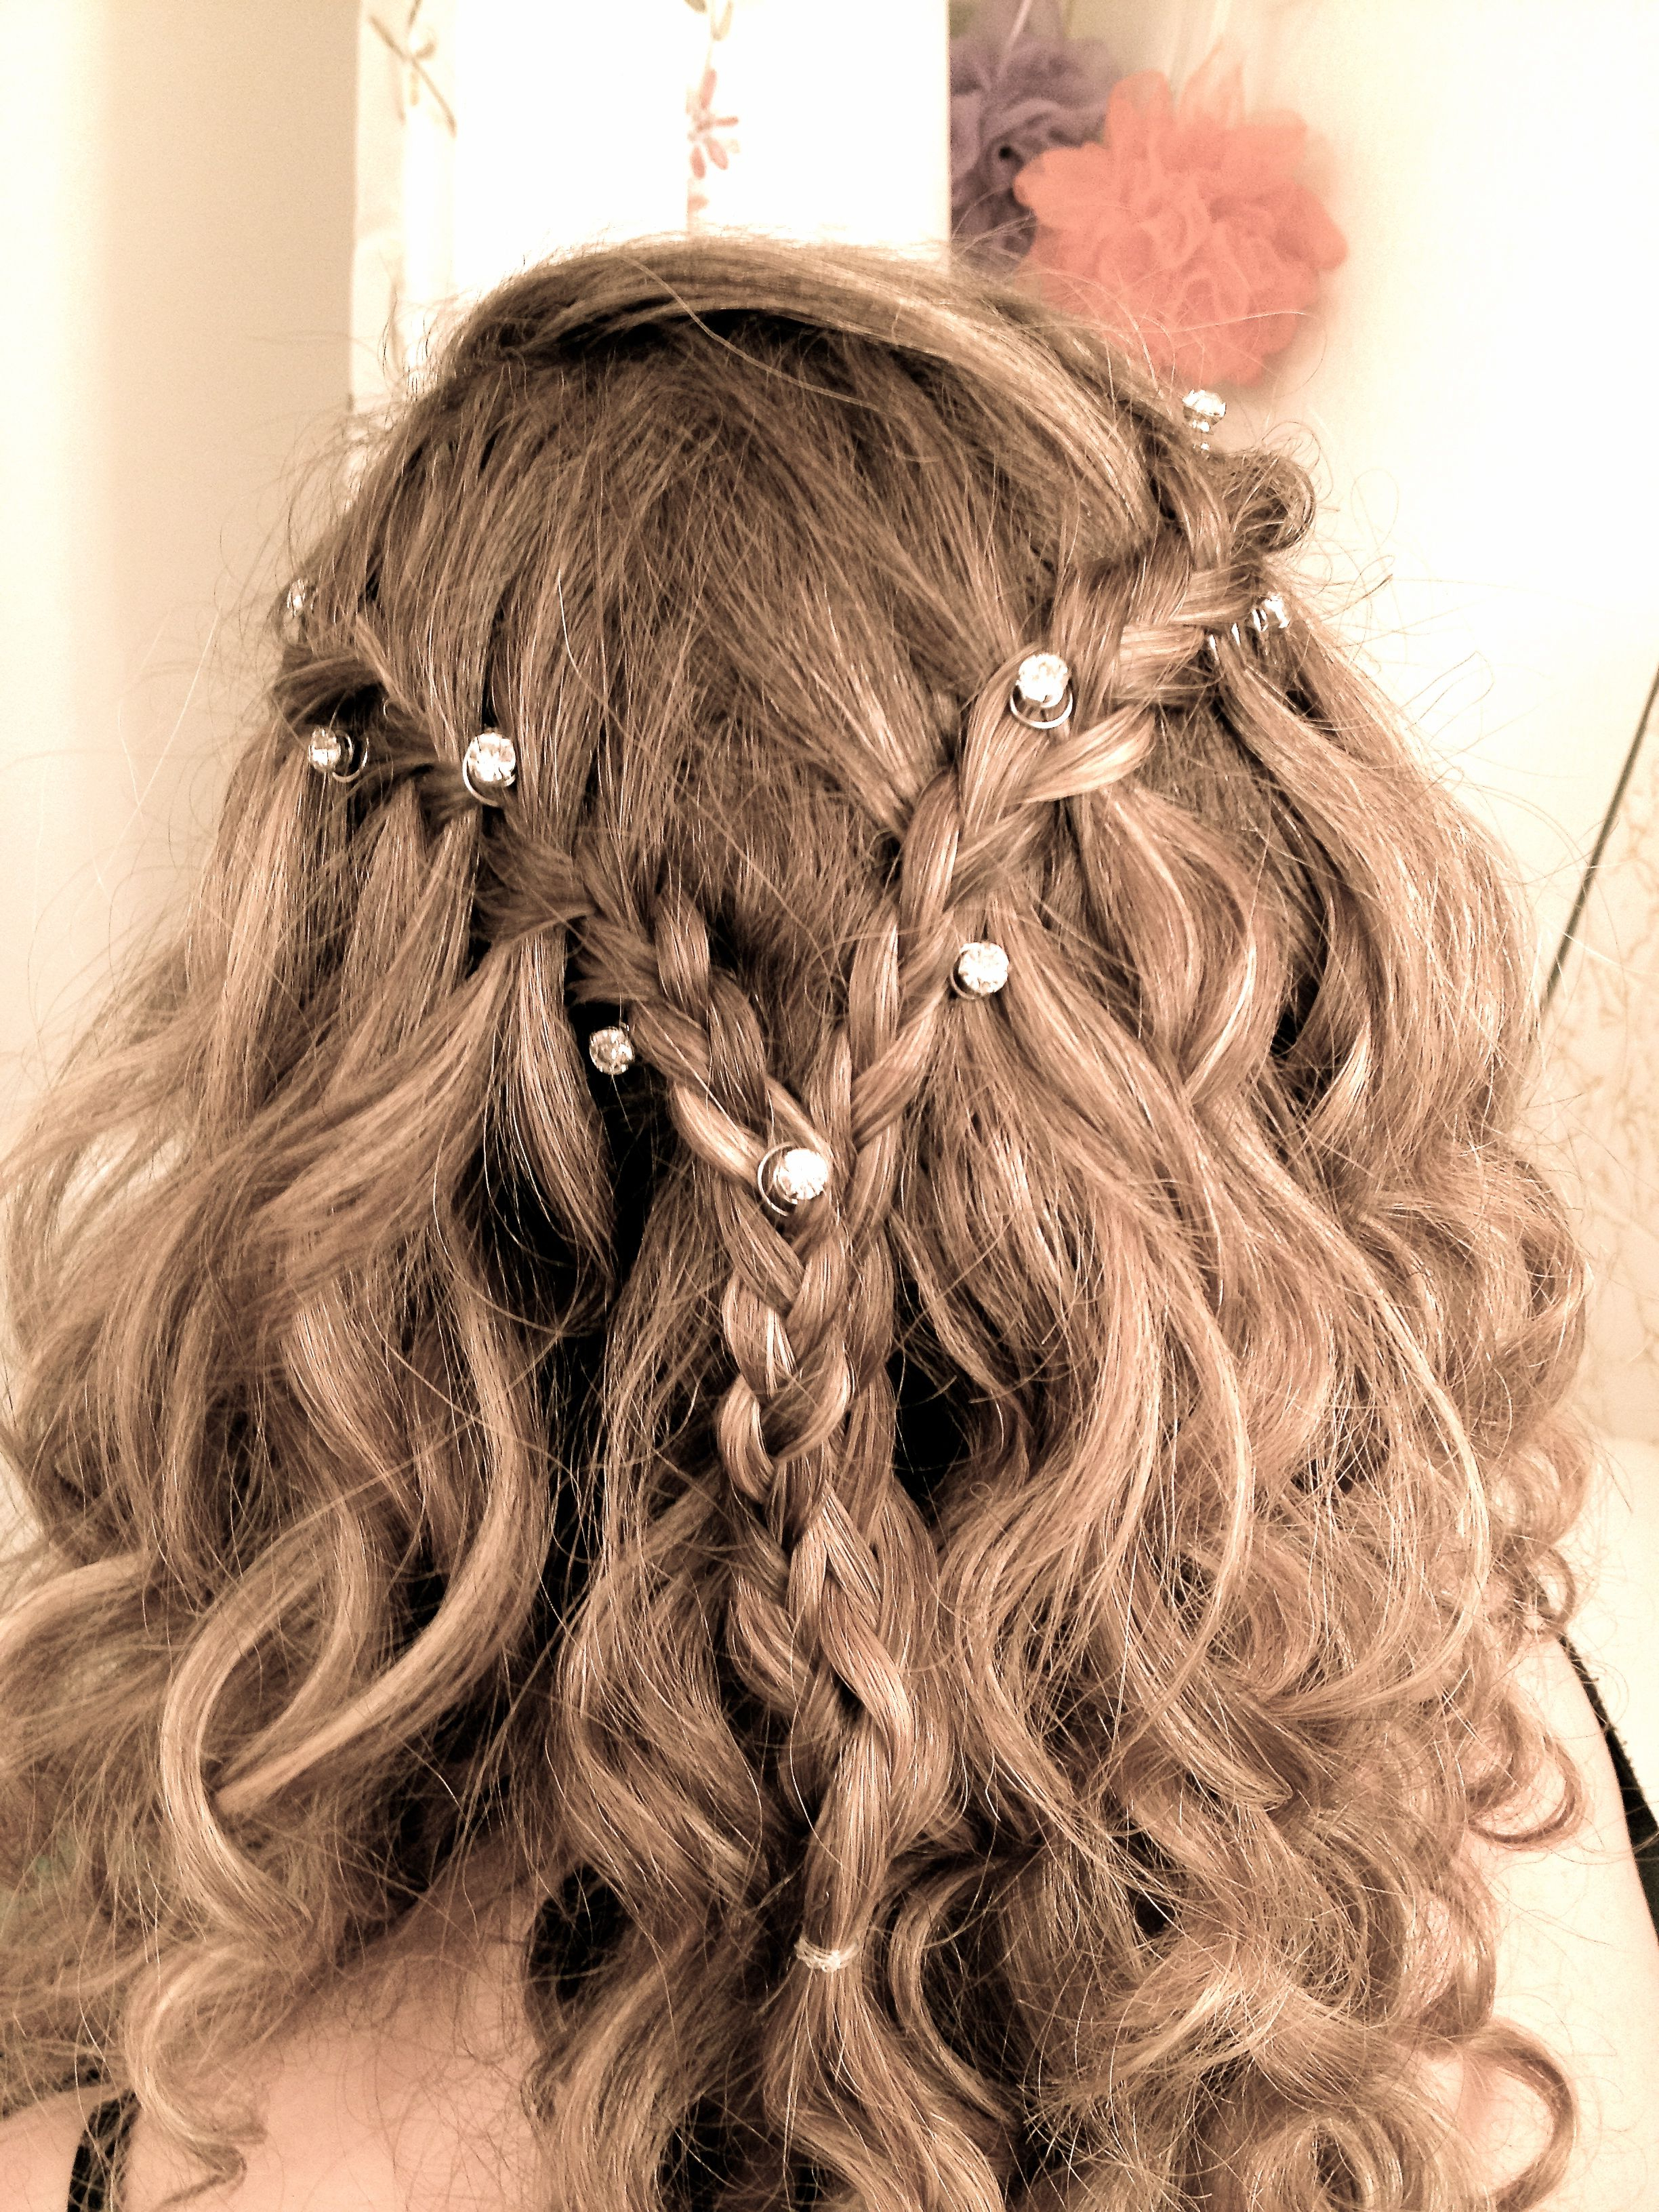 Waterfall Braid With Diamond Hair Pins (View 7 of 20)